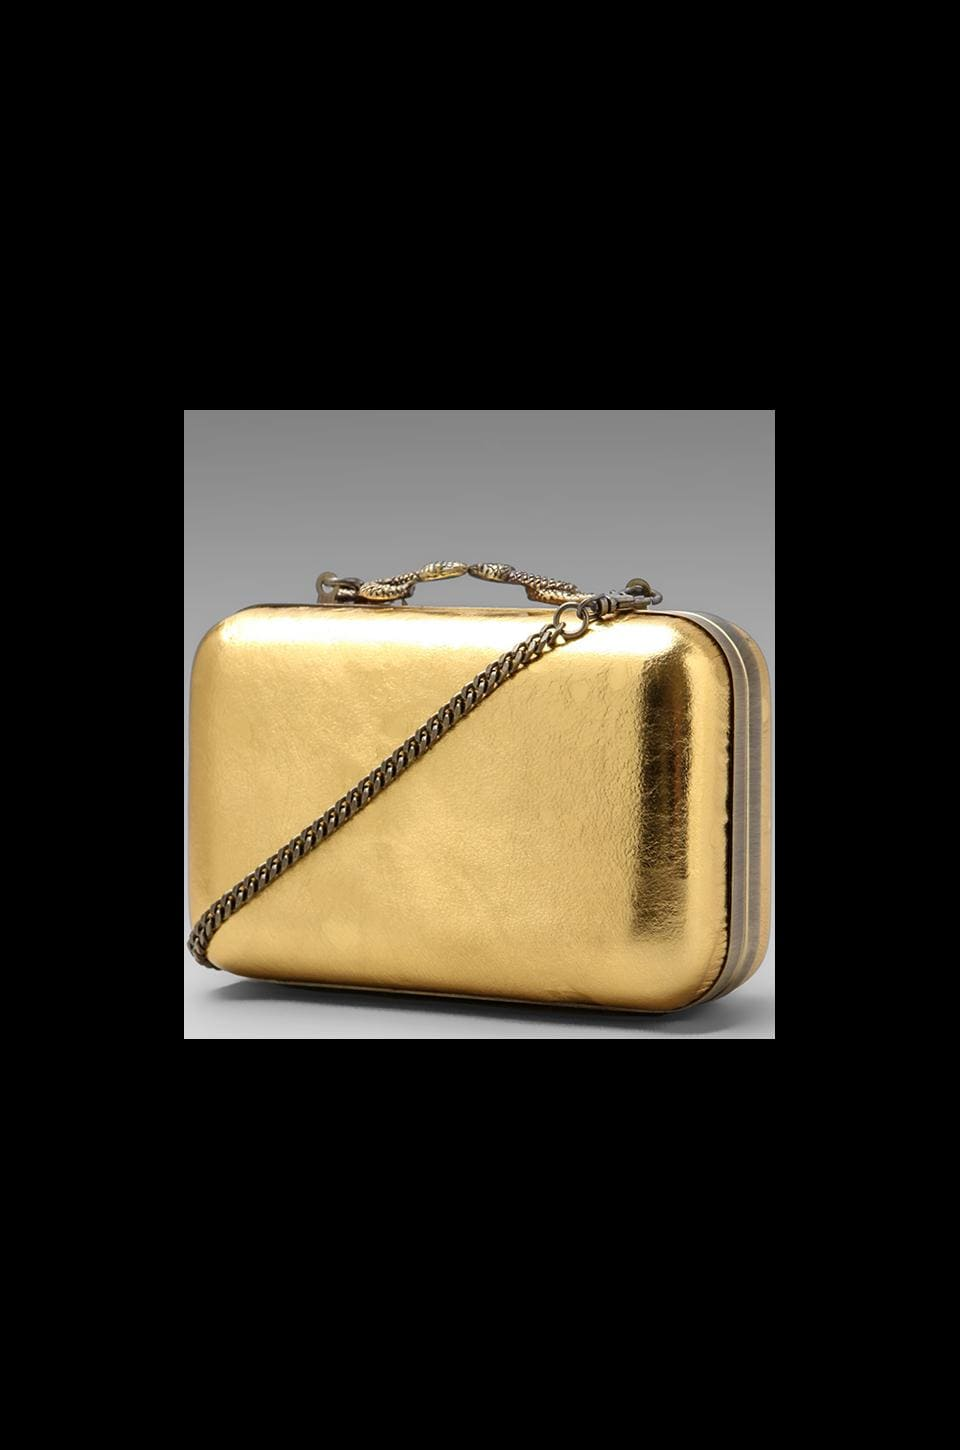 House of Harlow Marley Clutch in Gold Metallic